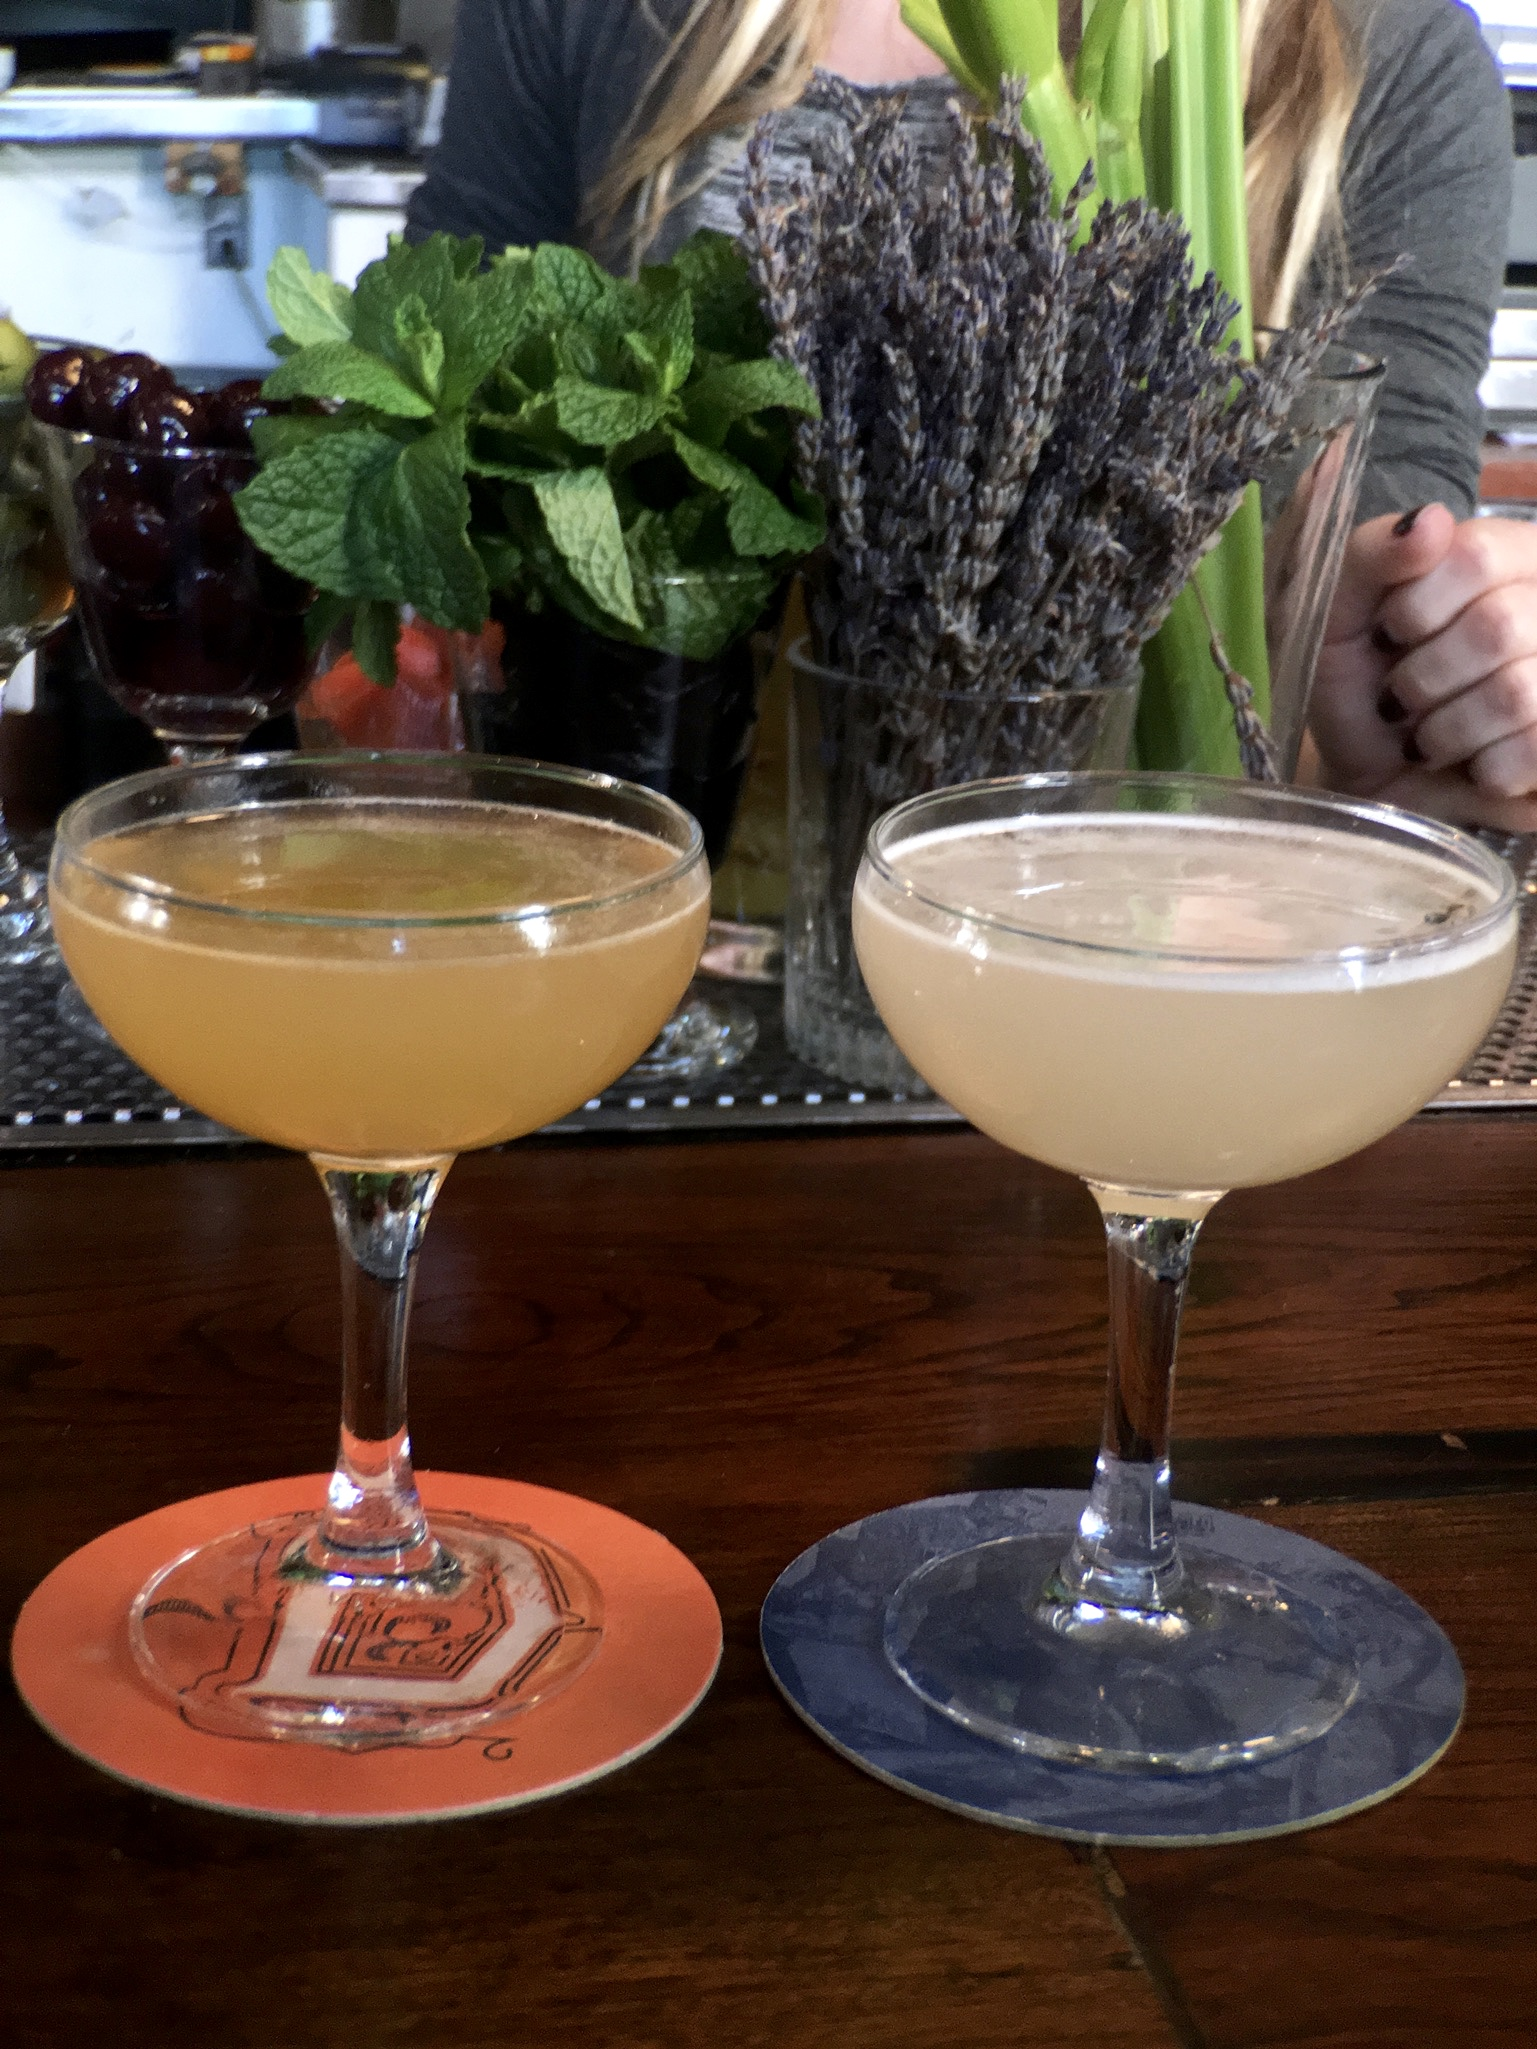 Cocktails from The Dorian in the San Francisco Marina District